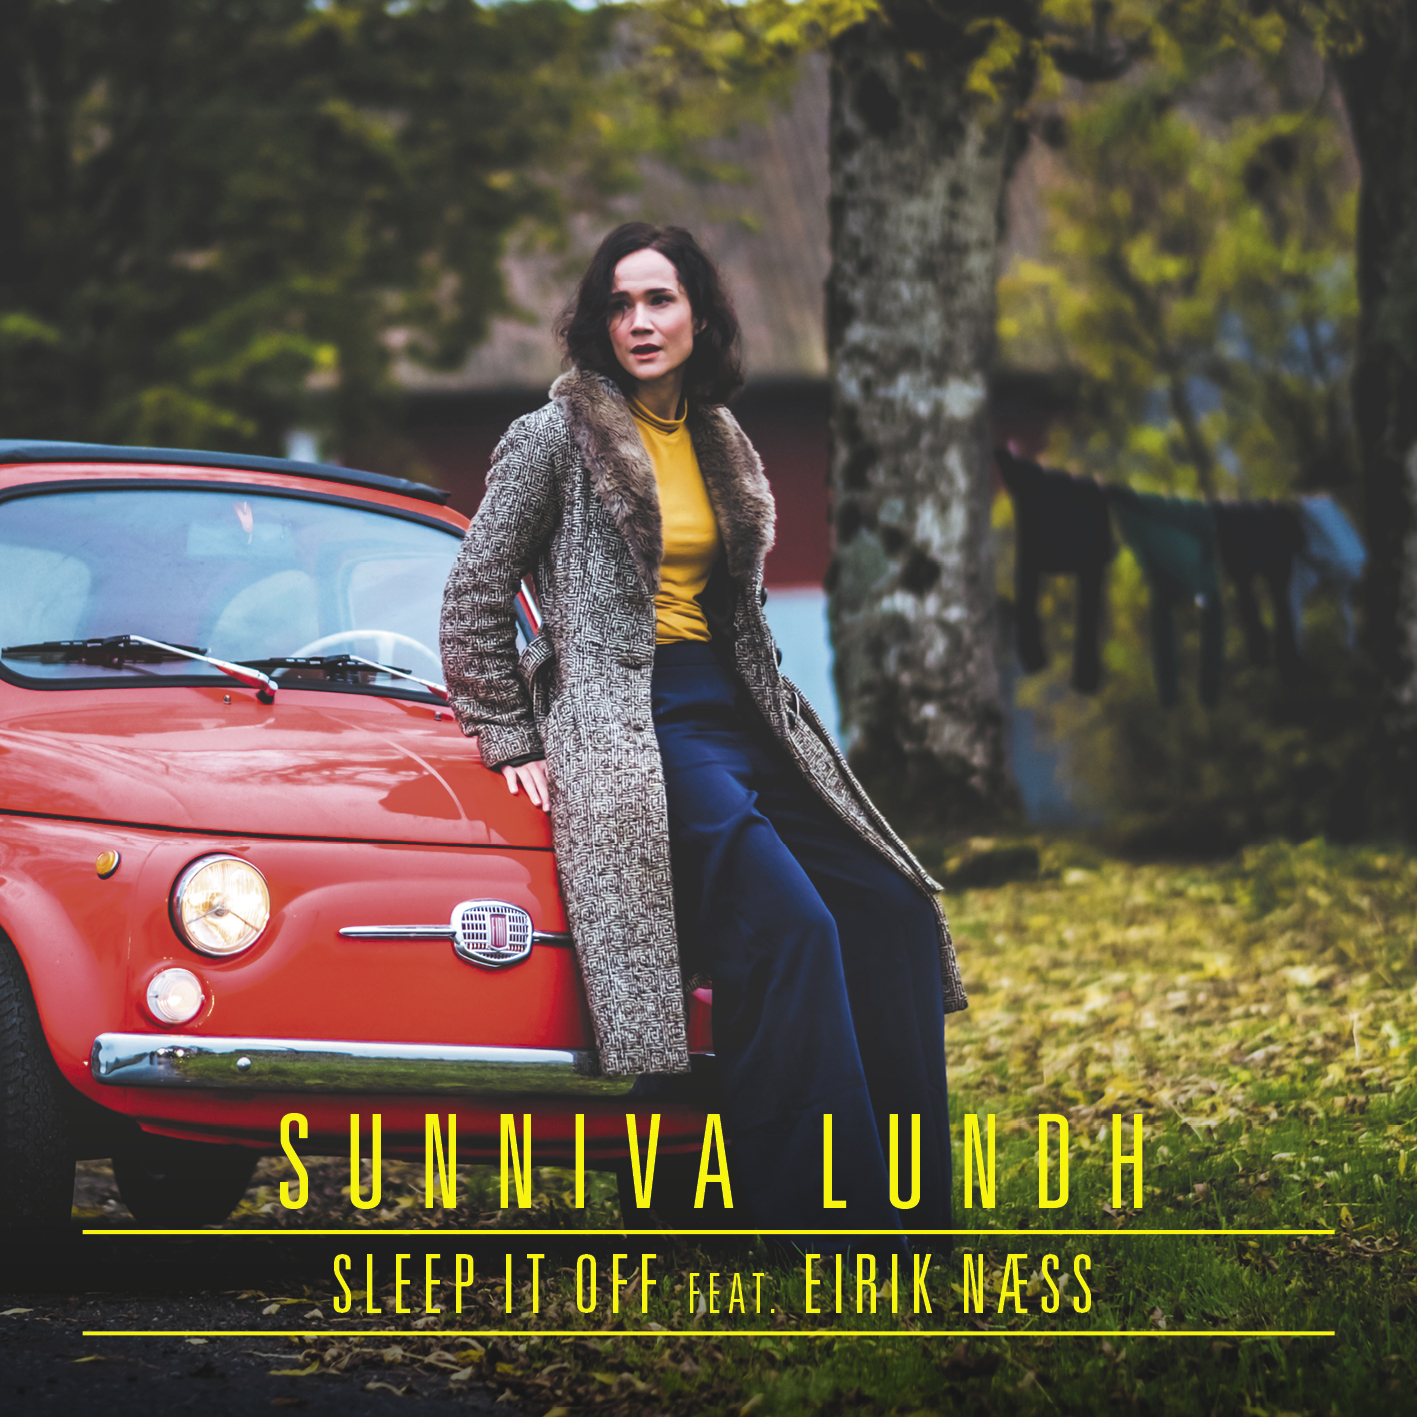 sunniva lundh - sleep it off